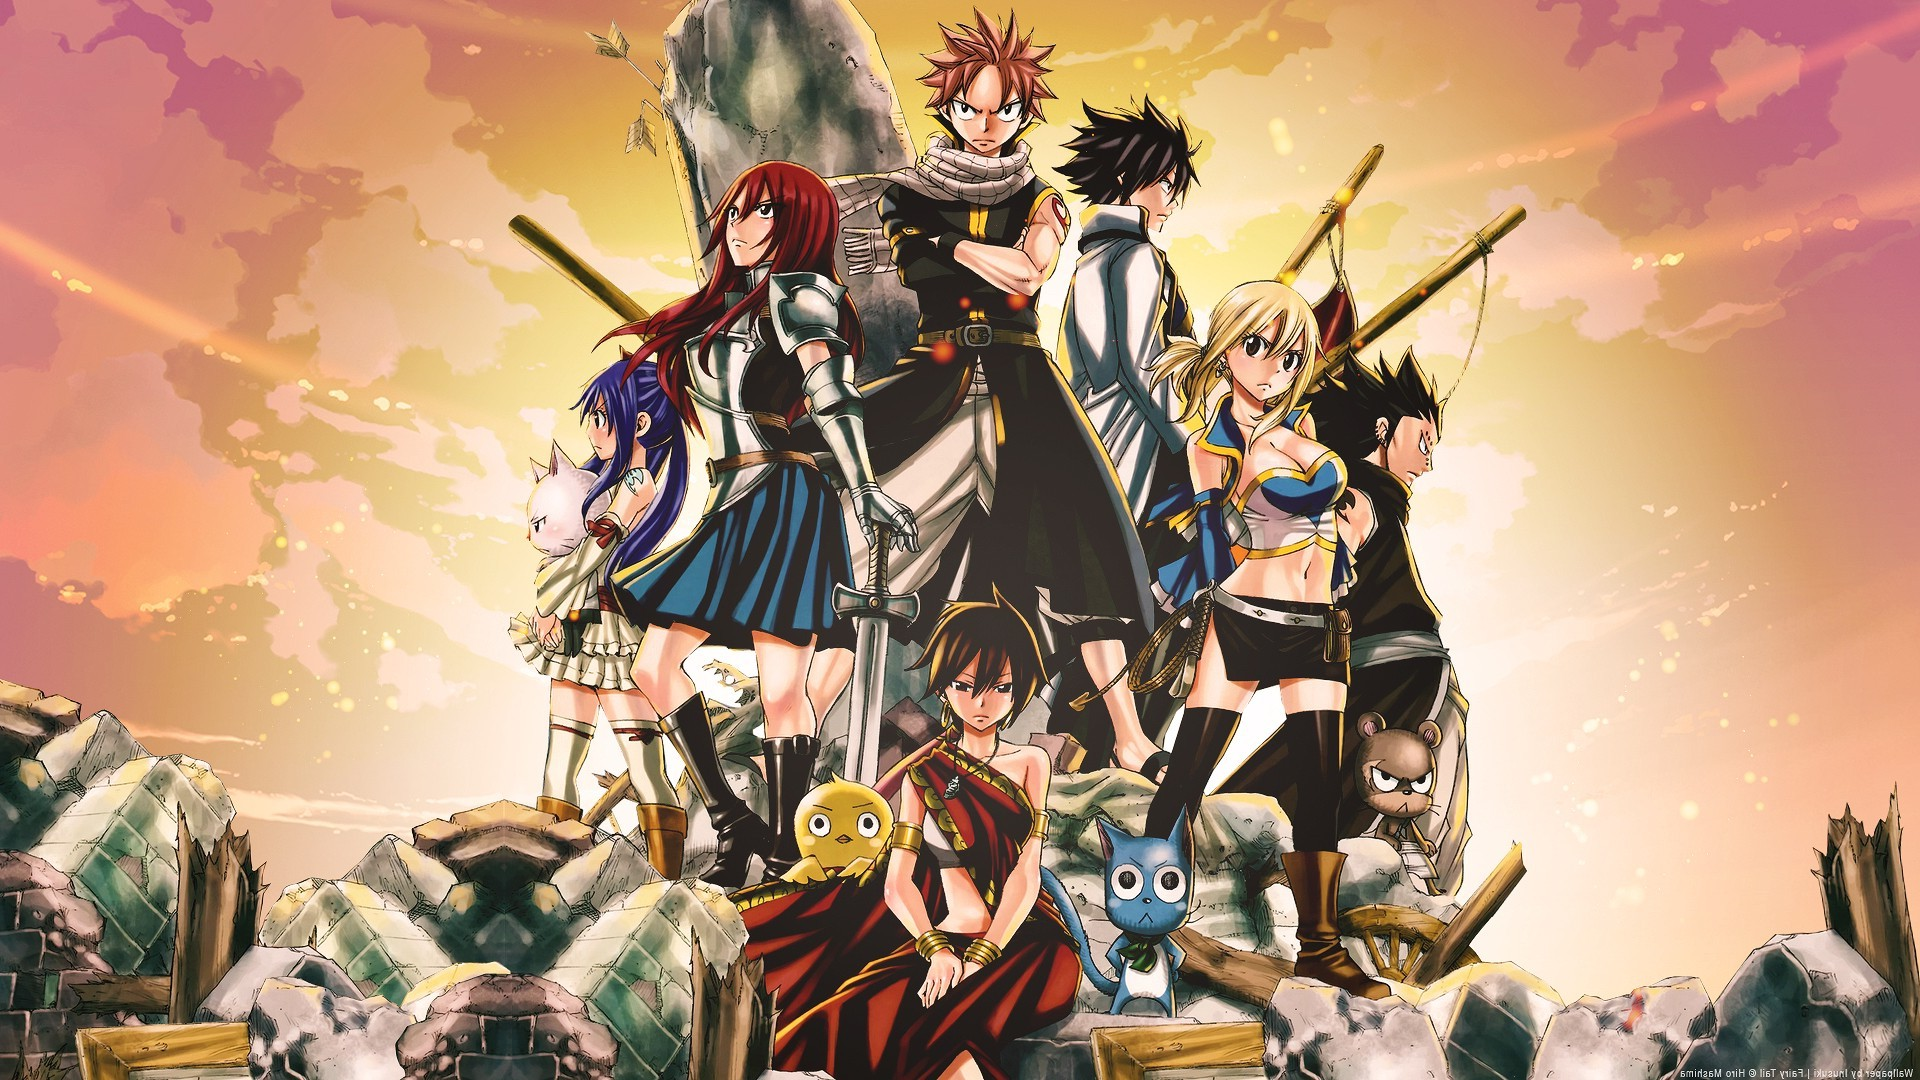 69 anime fairy tail wallpaper Pictures